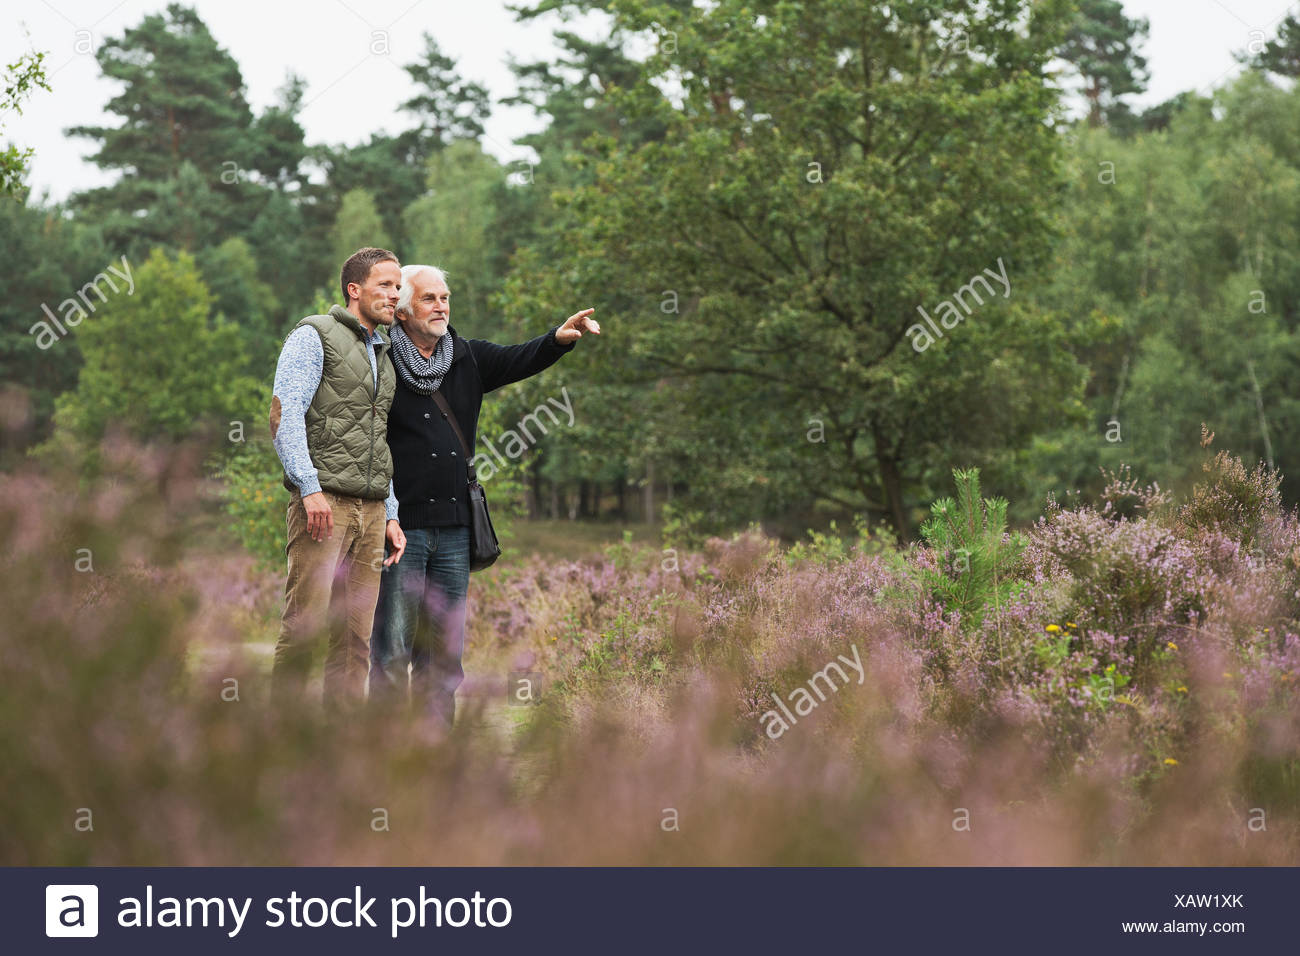 Father and adult son birdwatching - Stock Image